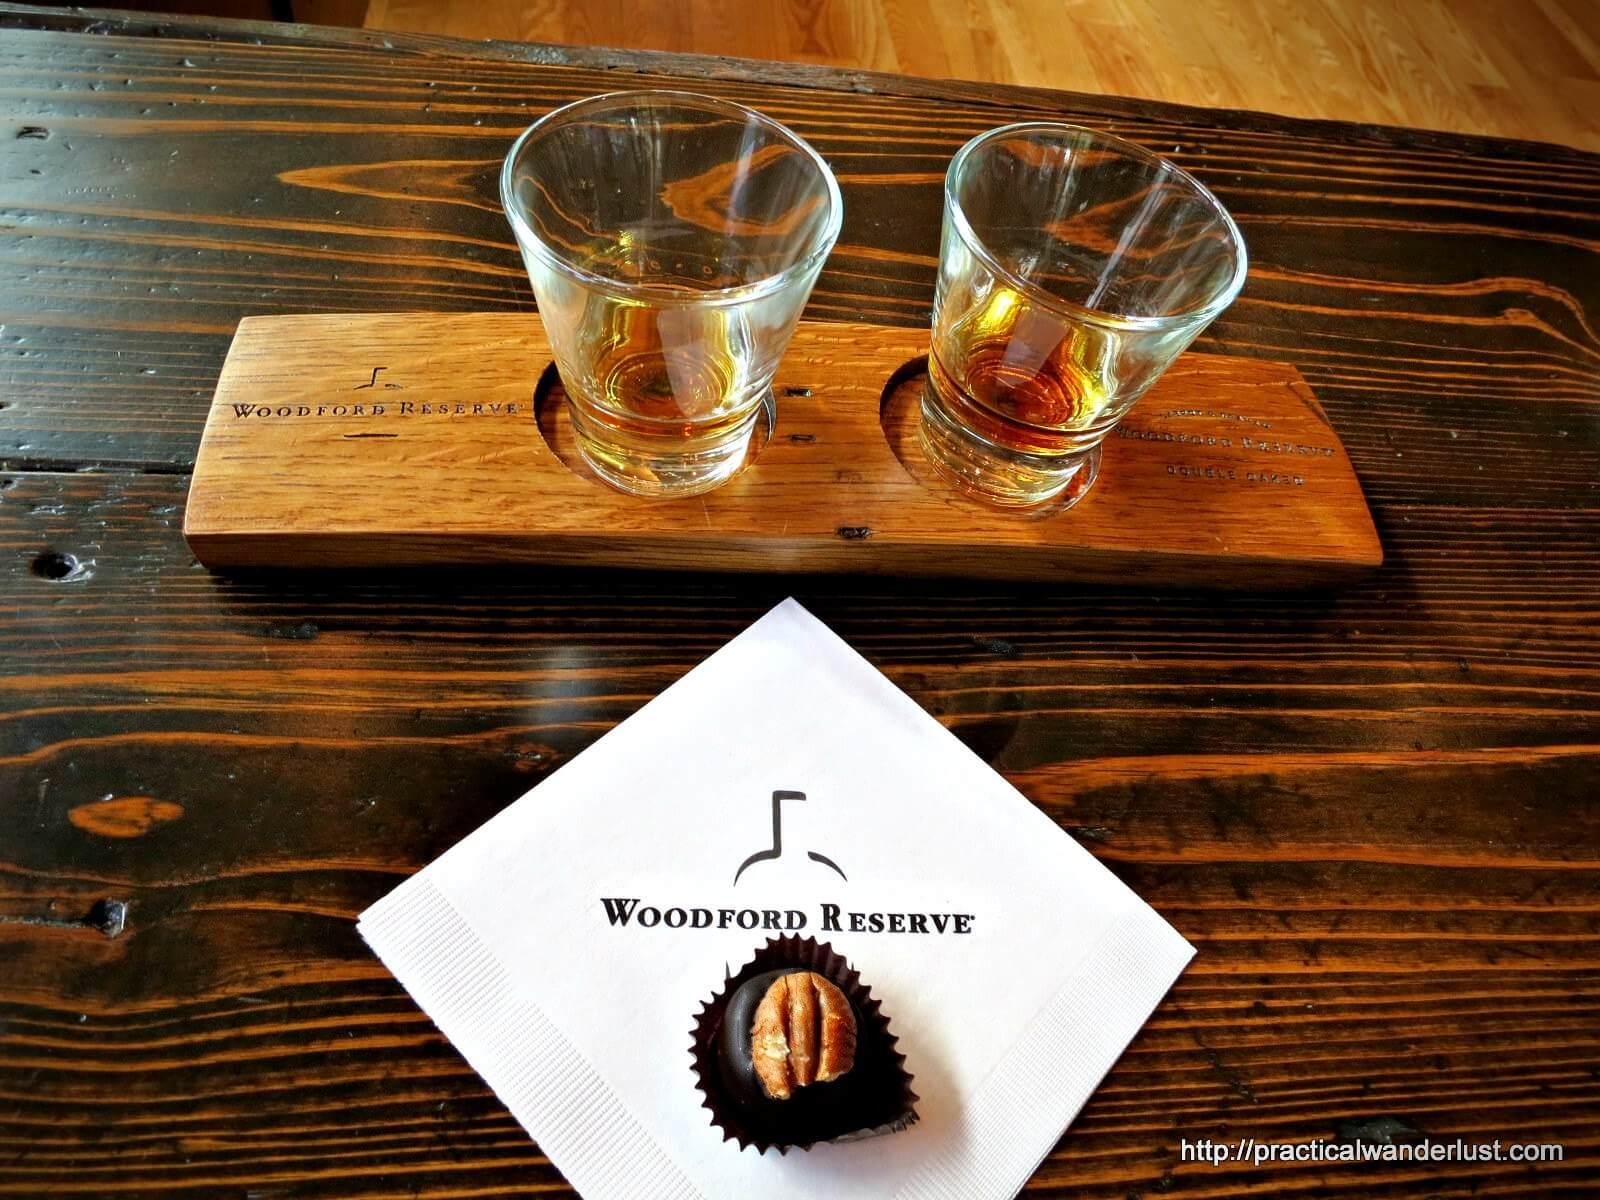 Bourbon Tasting at the Woodford Reserve Distillery in Louisville. The best part? Bourbon balls are included in your tour and tasting!